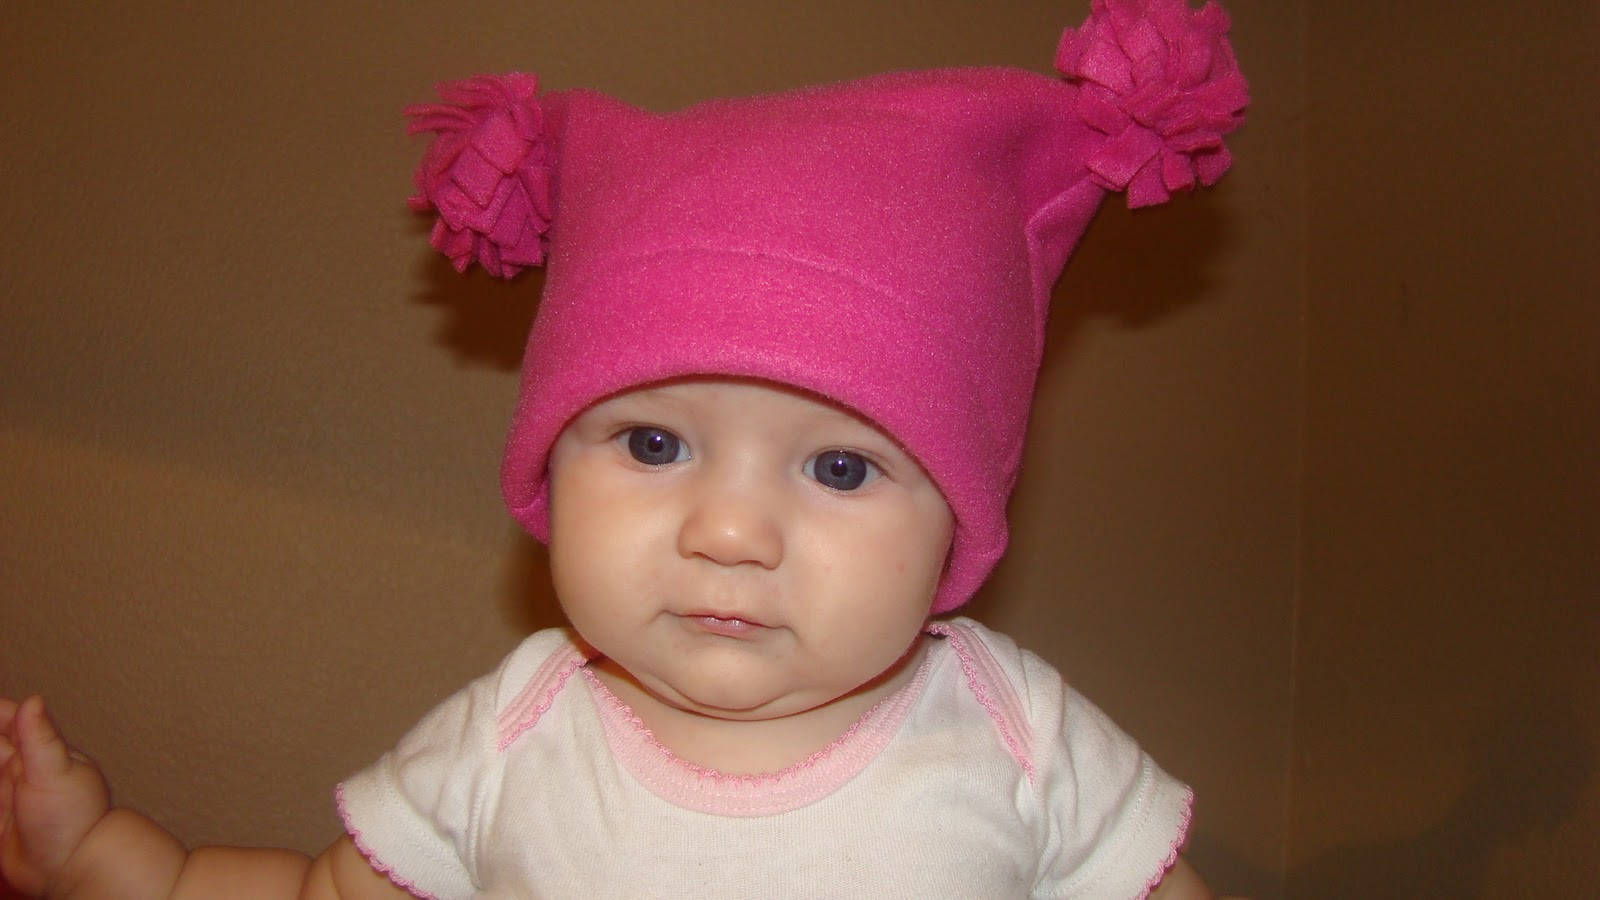 You searched for: kids fleece hat! Etsy is the home to thousands of handmade, vintage, and one-of-a-kind products and gifts related to your search. No matter what you're looking for or where you are in the world, our global marketplace of sellers can help you find unique and affordable options. Let's get started!